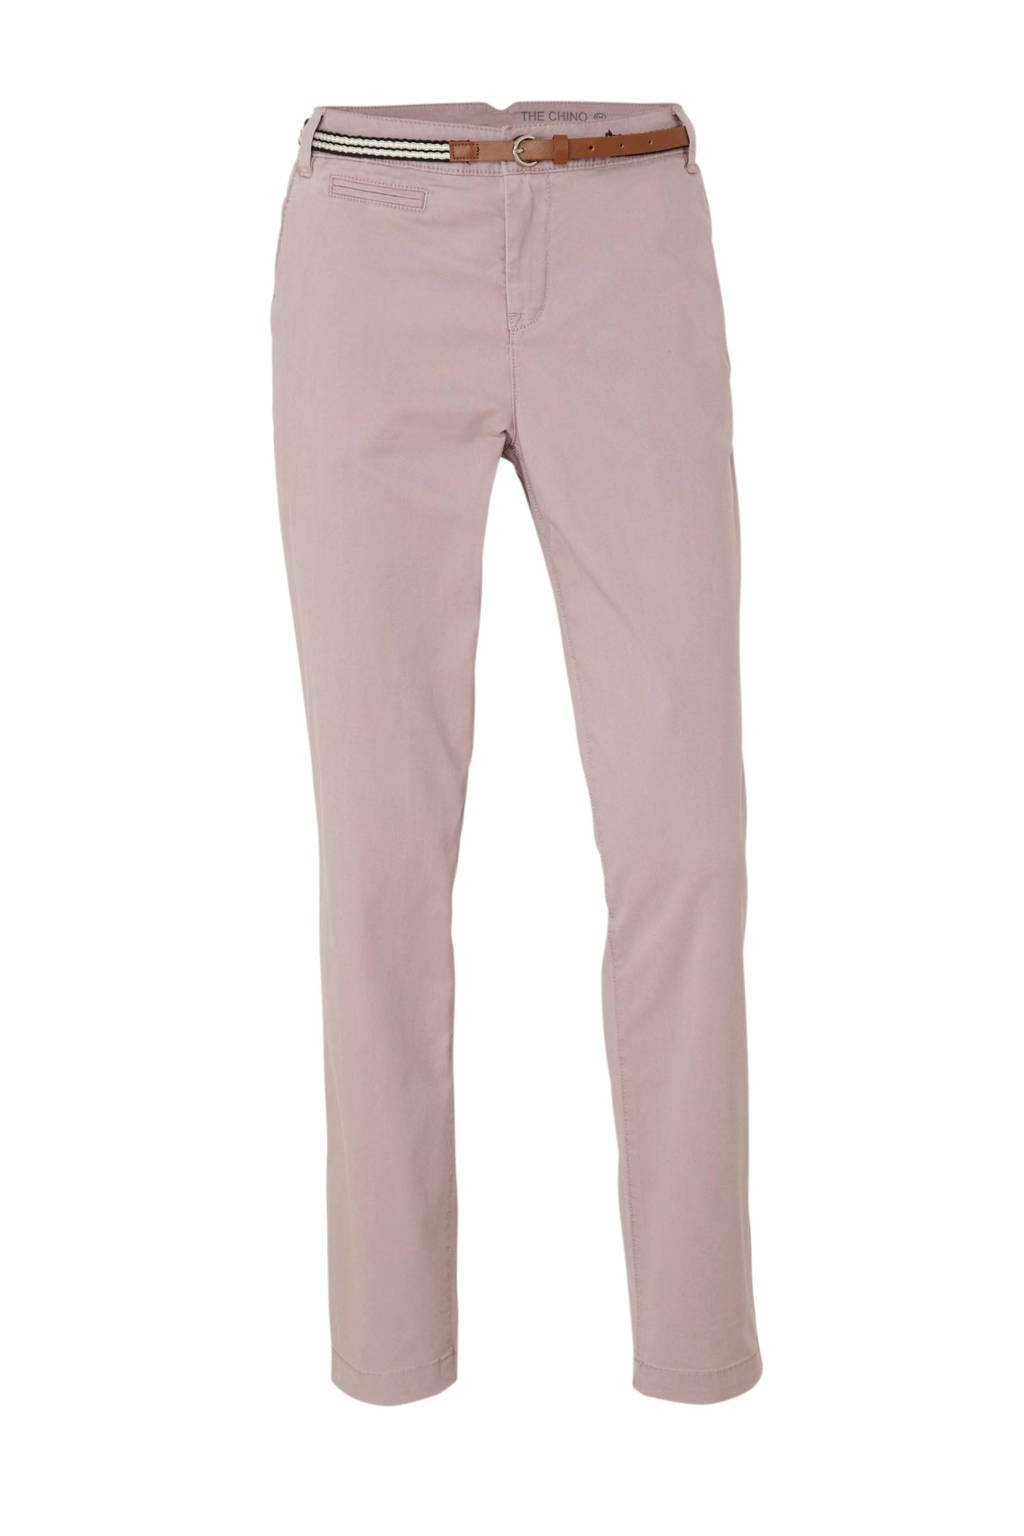 C&A Yessica chino oudroze, Oudroze